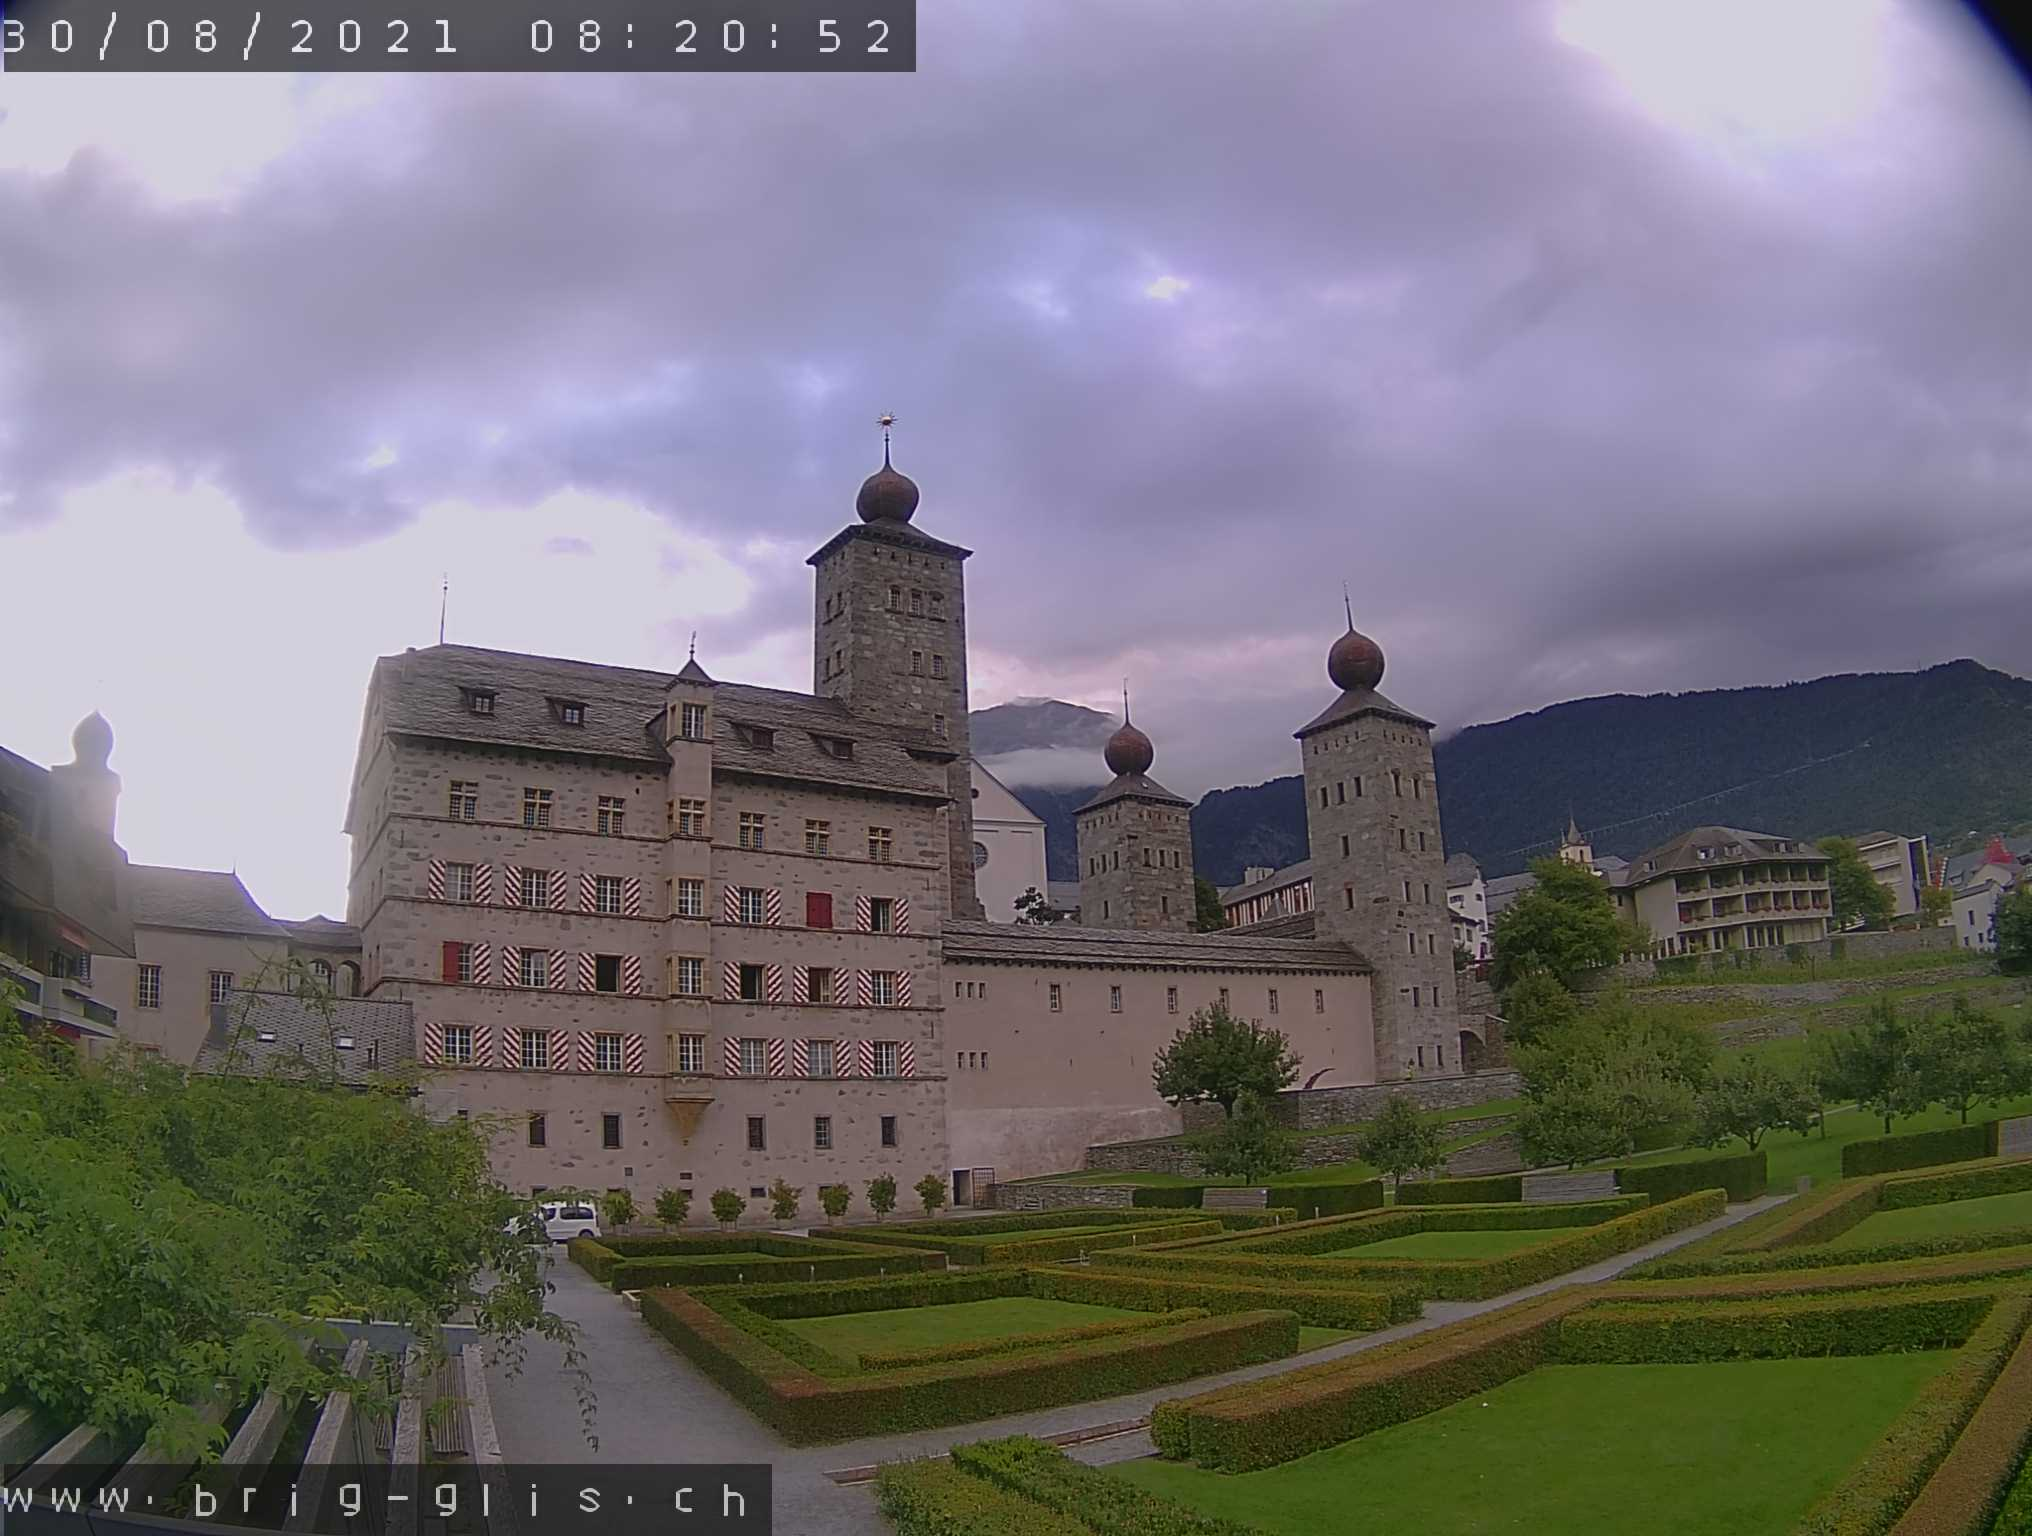 Brig-Glis – Stockalperschloss Webcam Live